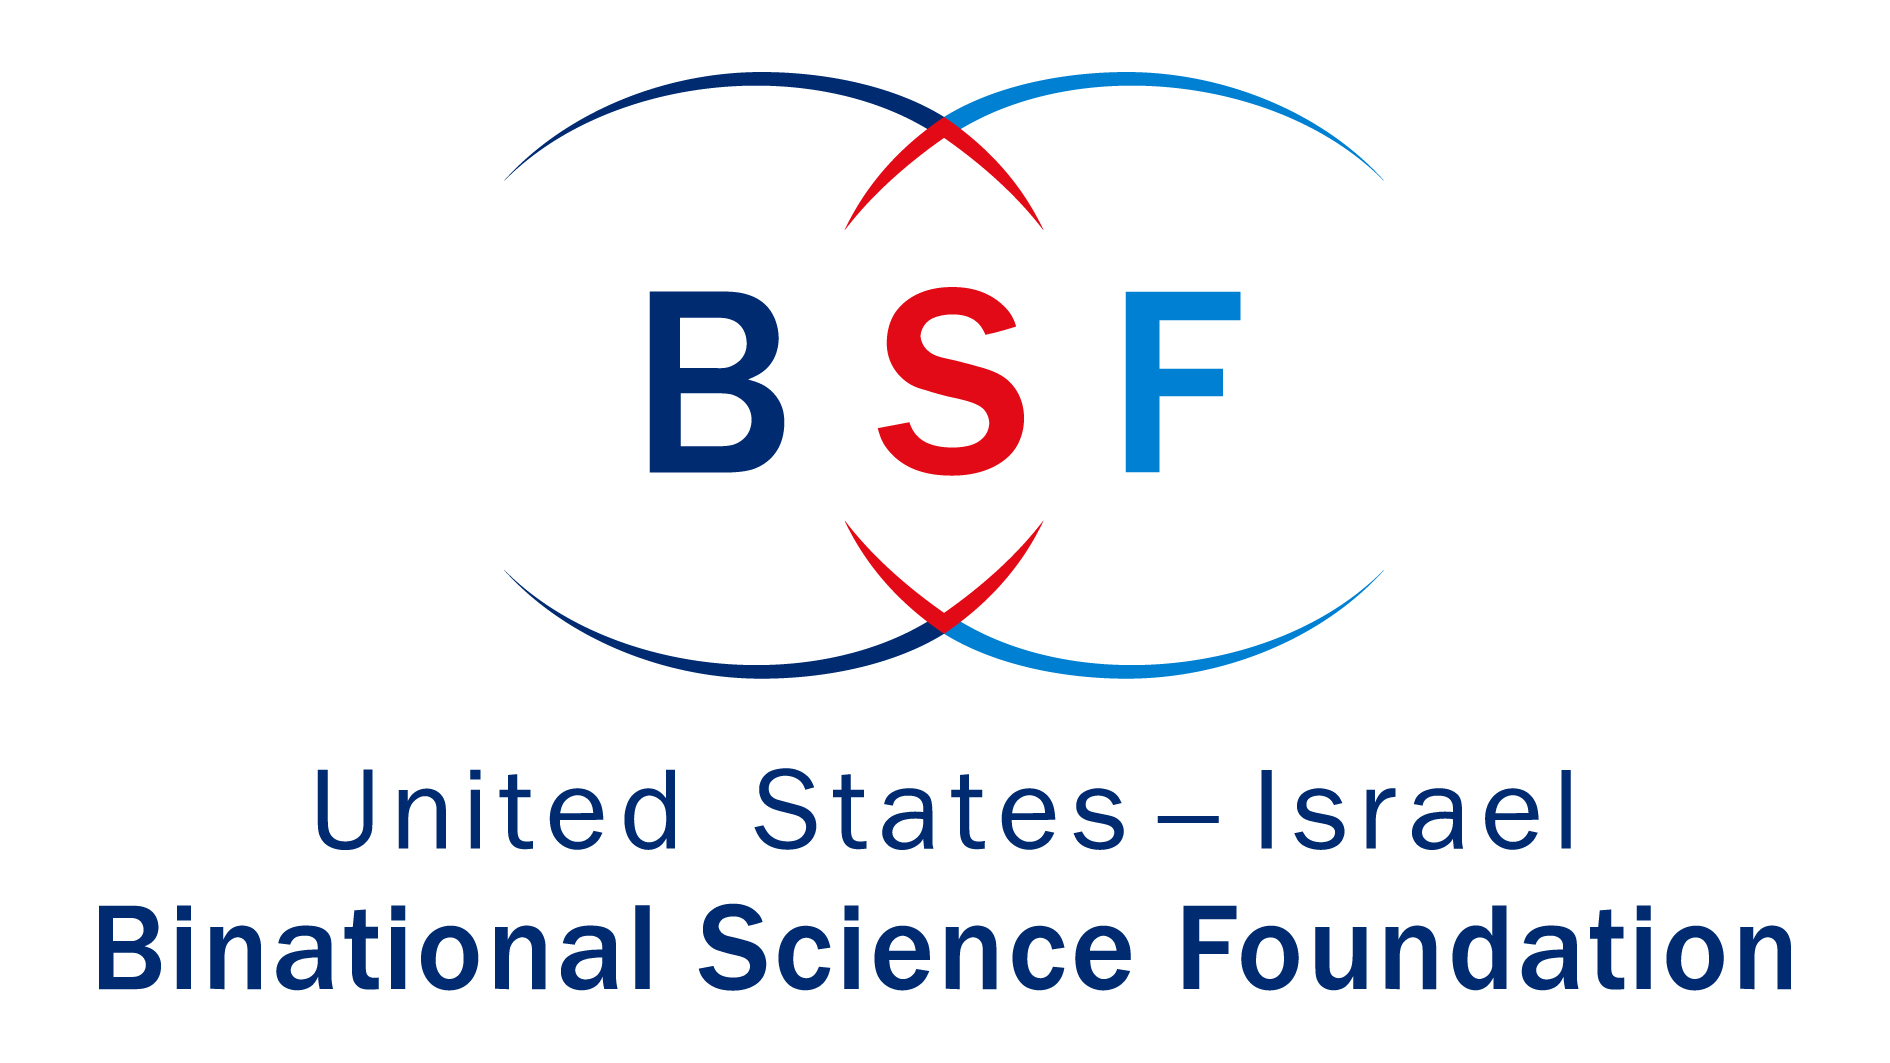 United States-Israel Binational Science Foundation (BSF) [image courtesy BSF].